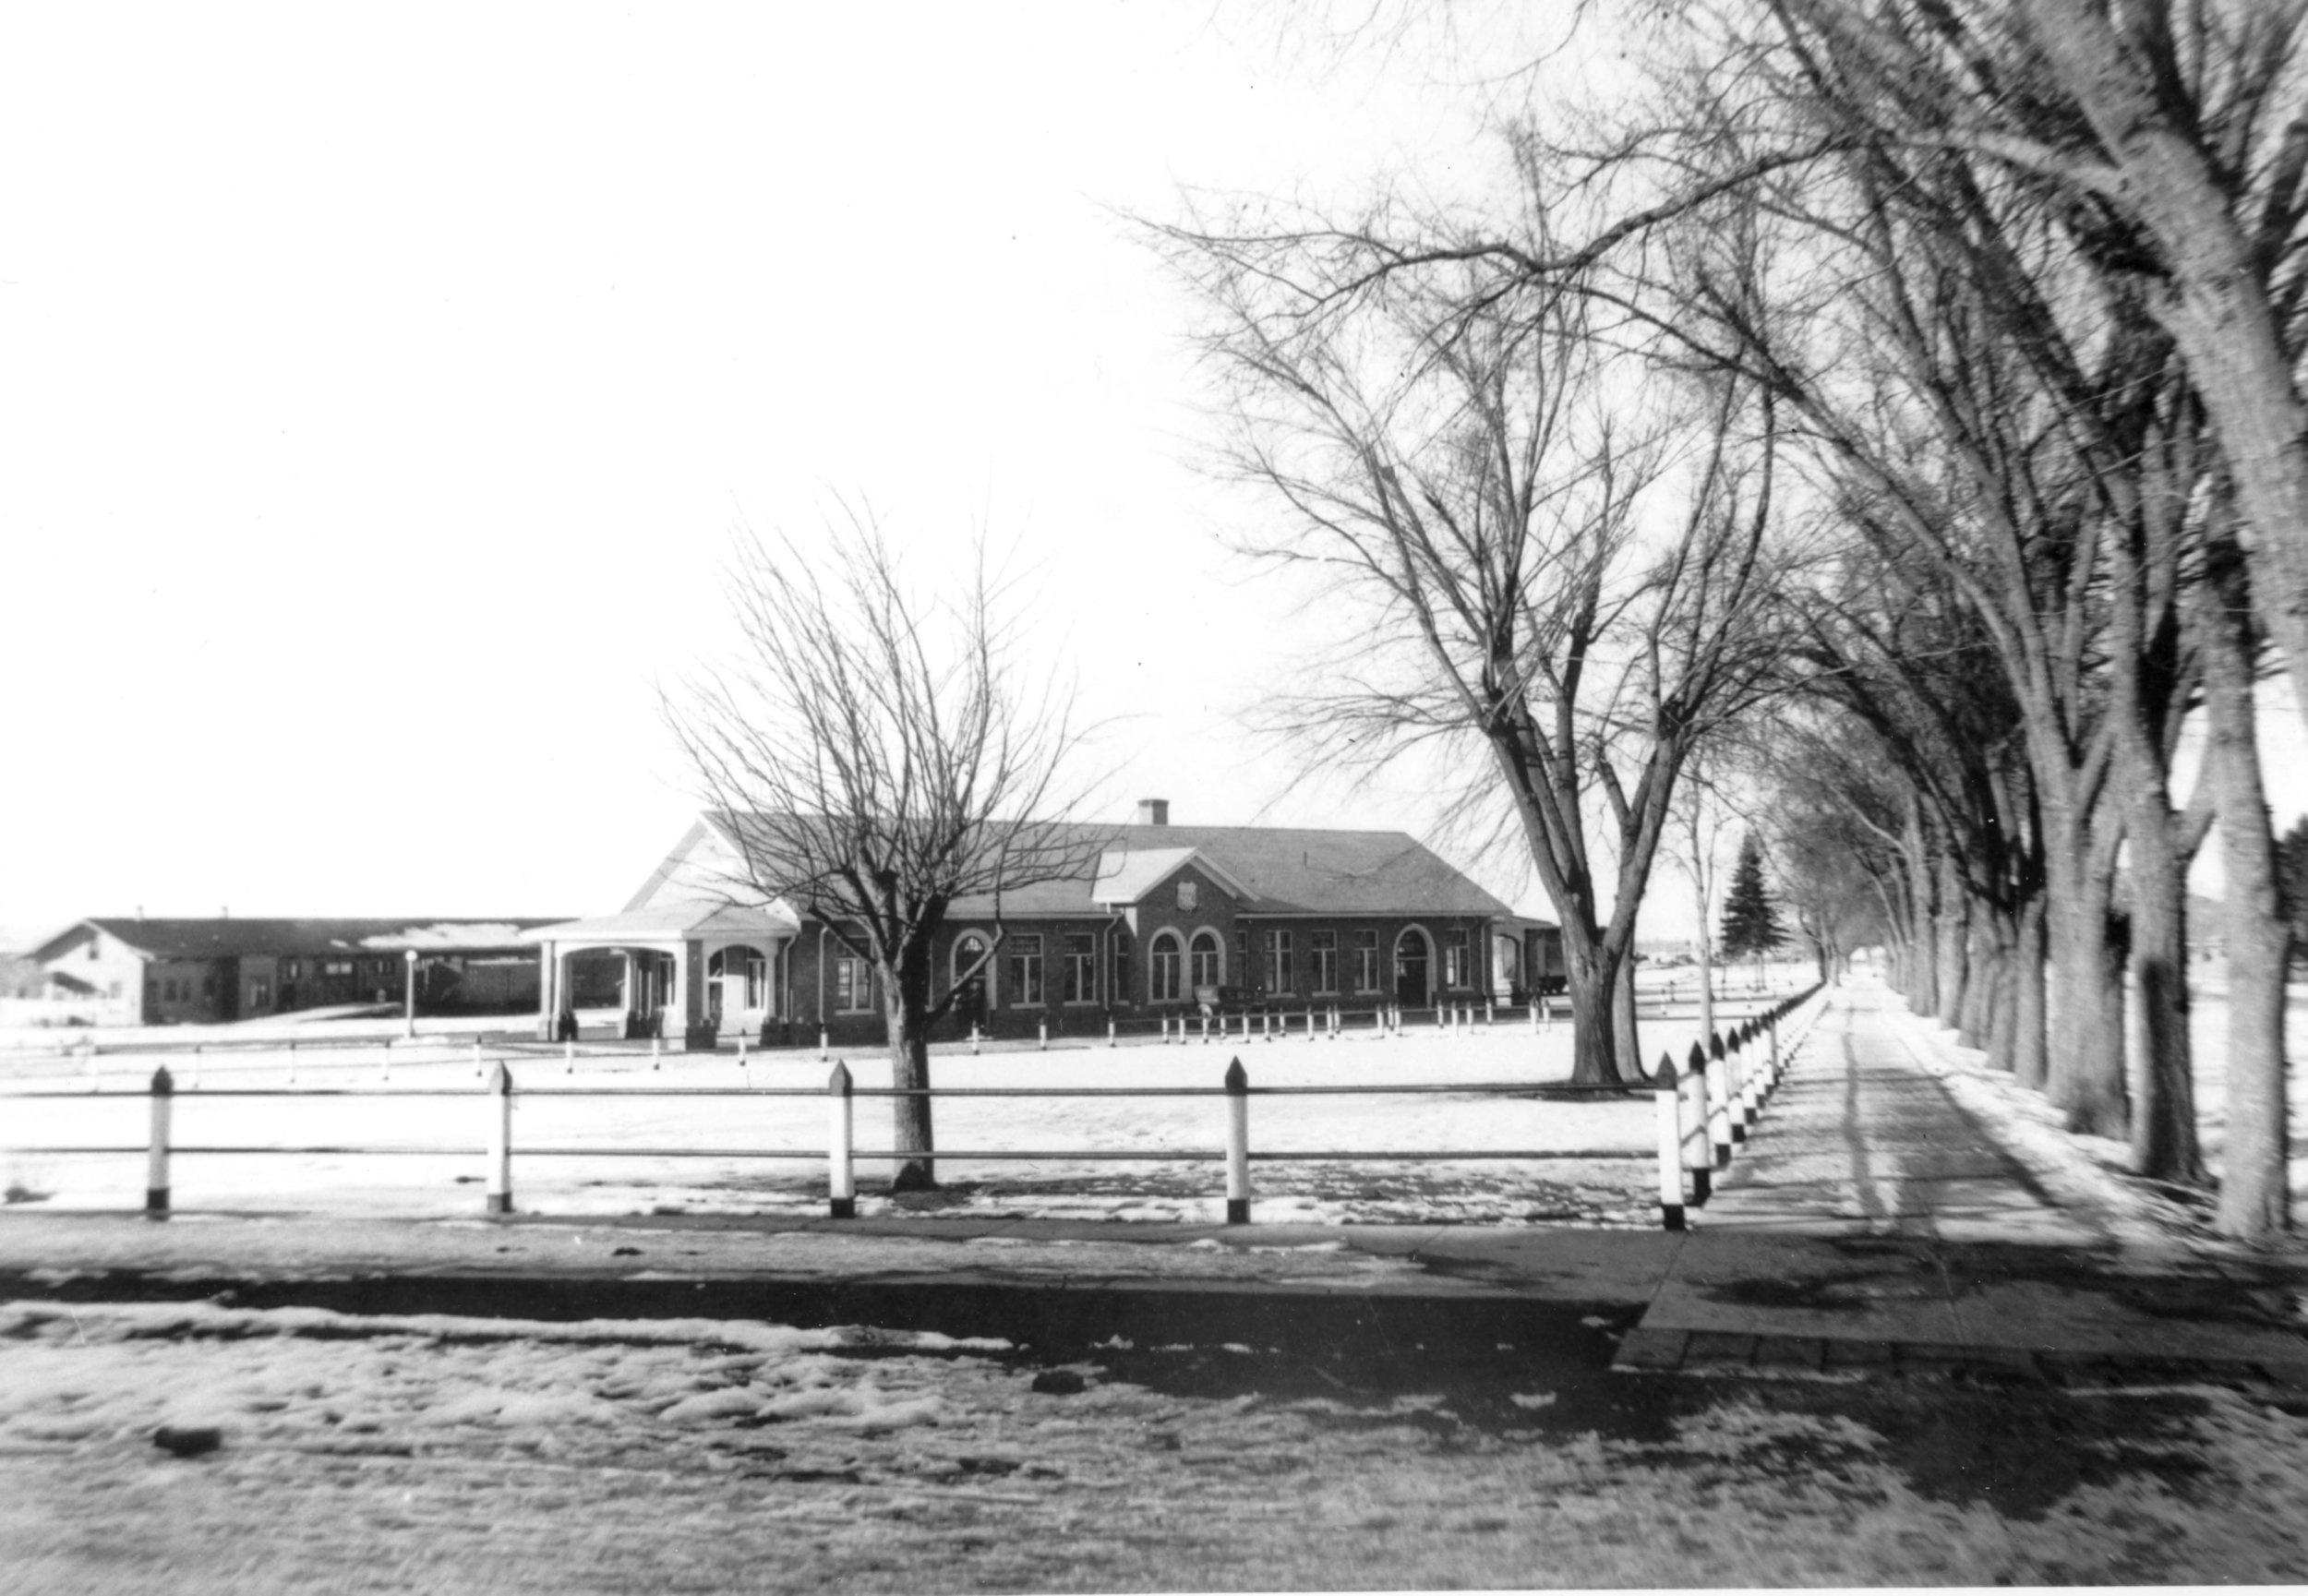 Cedar City Railroad Depot